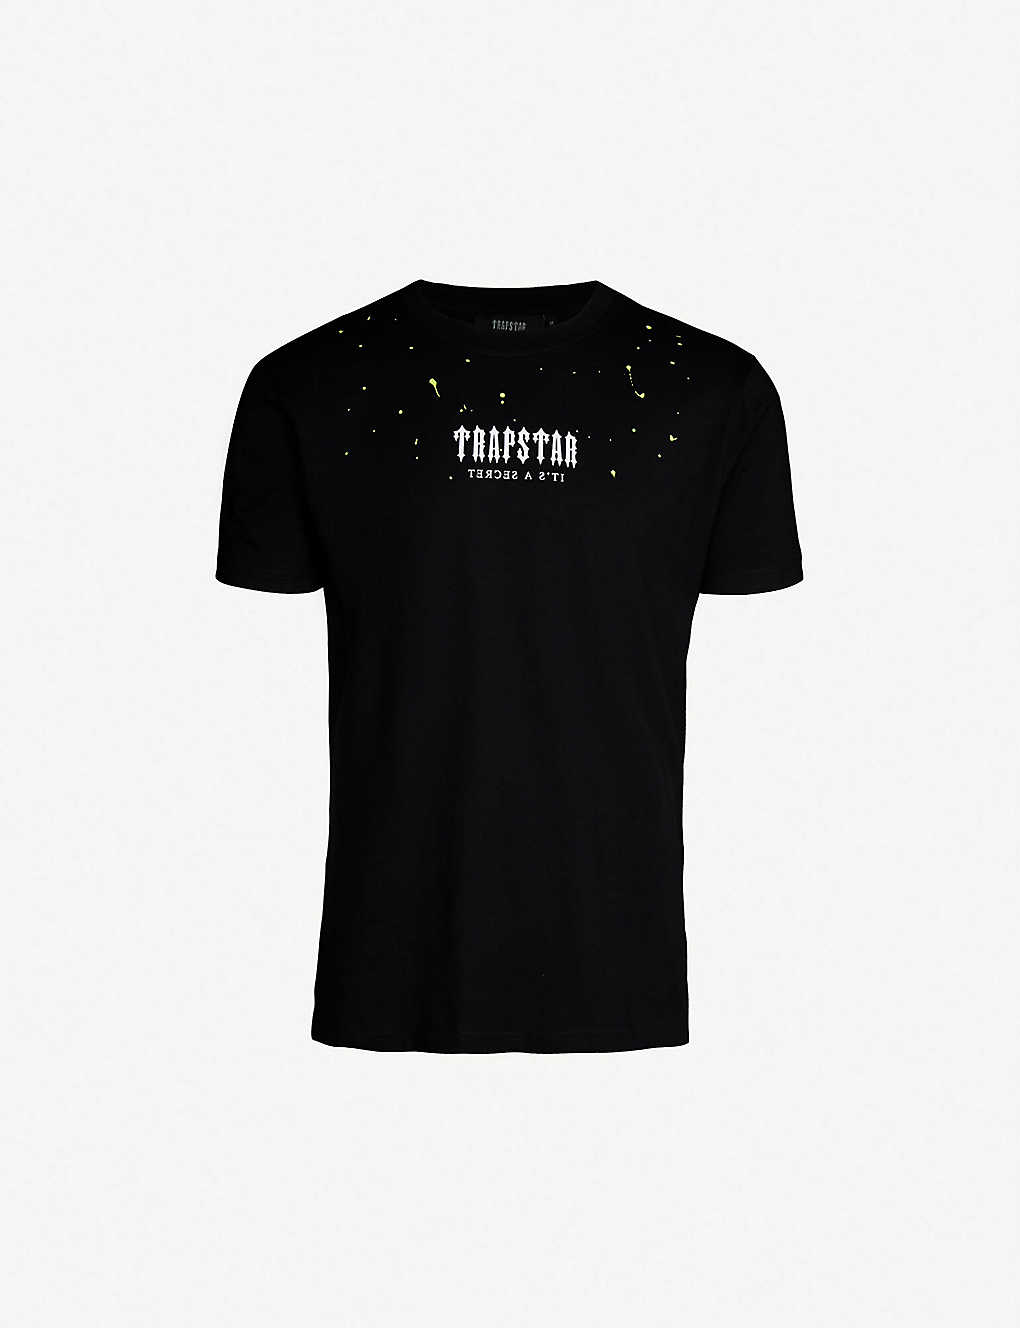 Trapstar For Selfridges Collection recommend